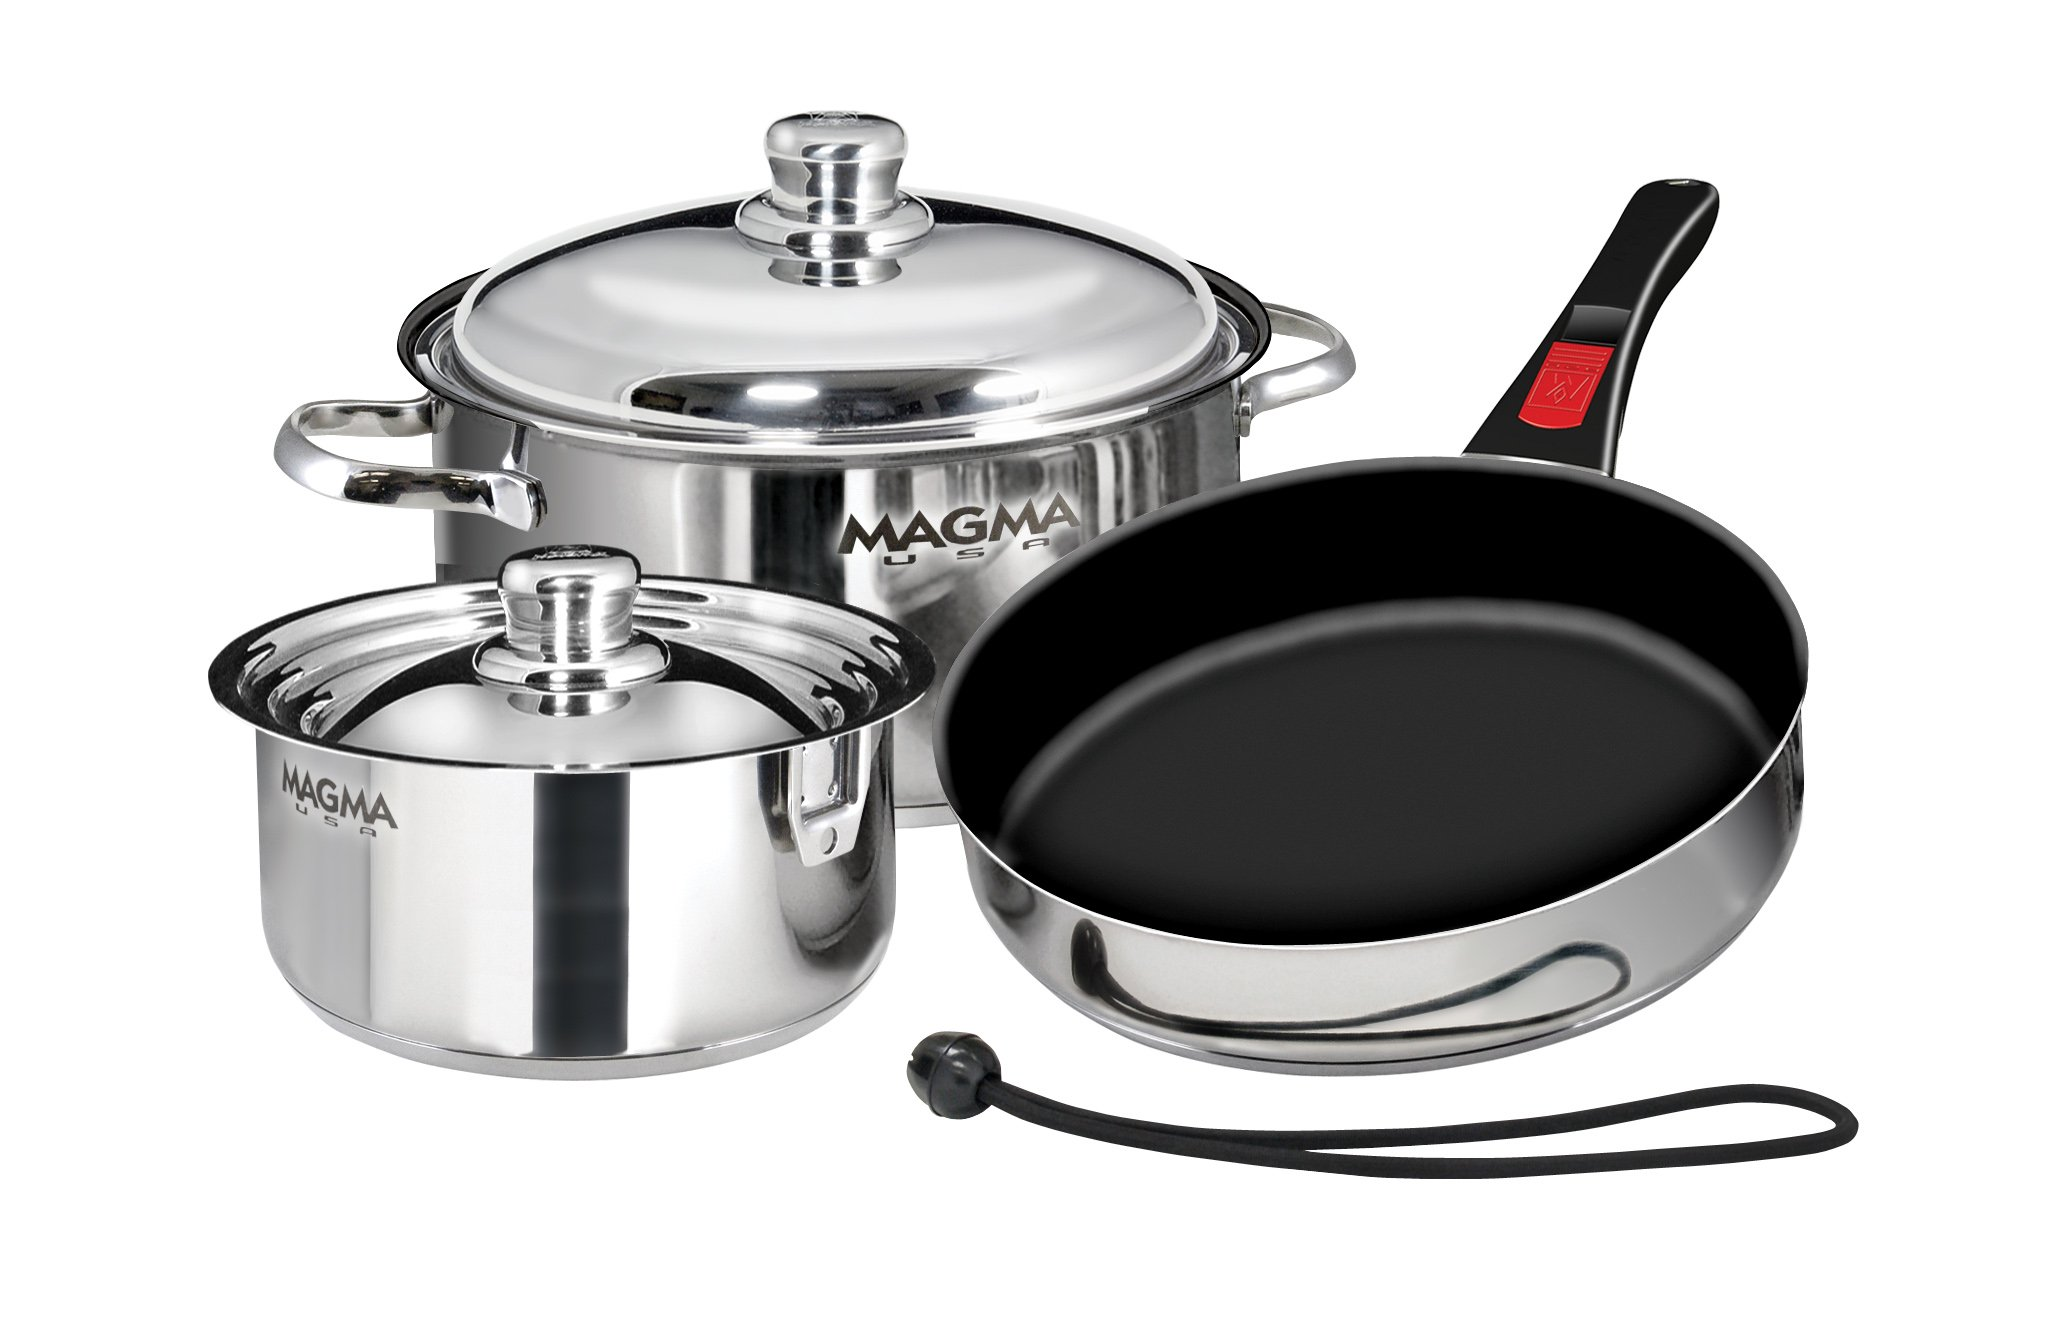 Magma Products, A10-363-2-IND, Gourmet ''Nesting'' 7-Piece Stainless Steel Induction Cookware Set with Ceramica Non-Stick by Magma Products